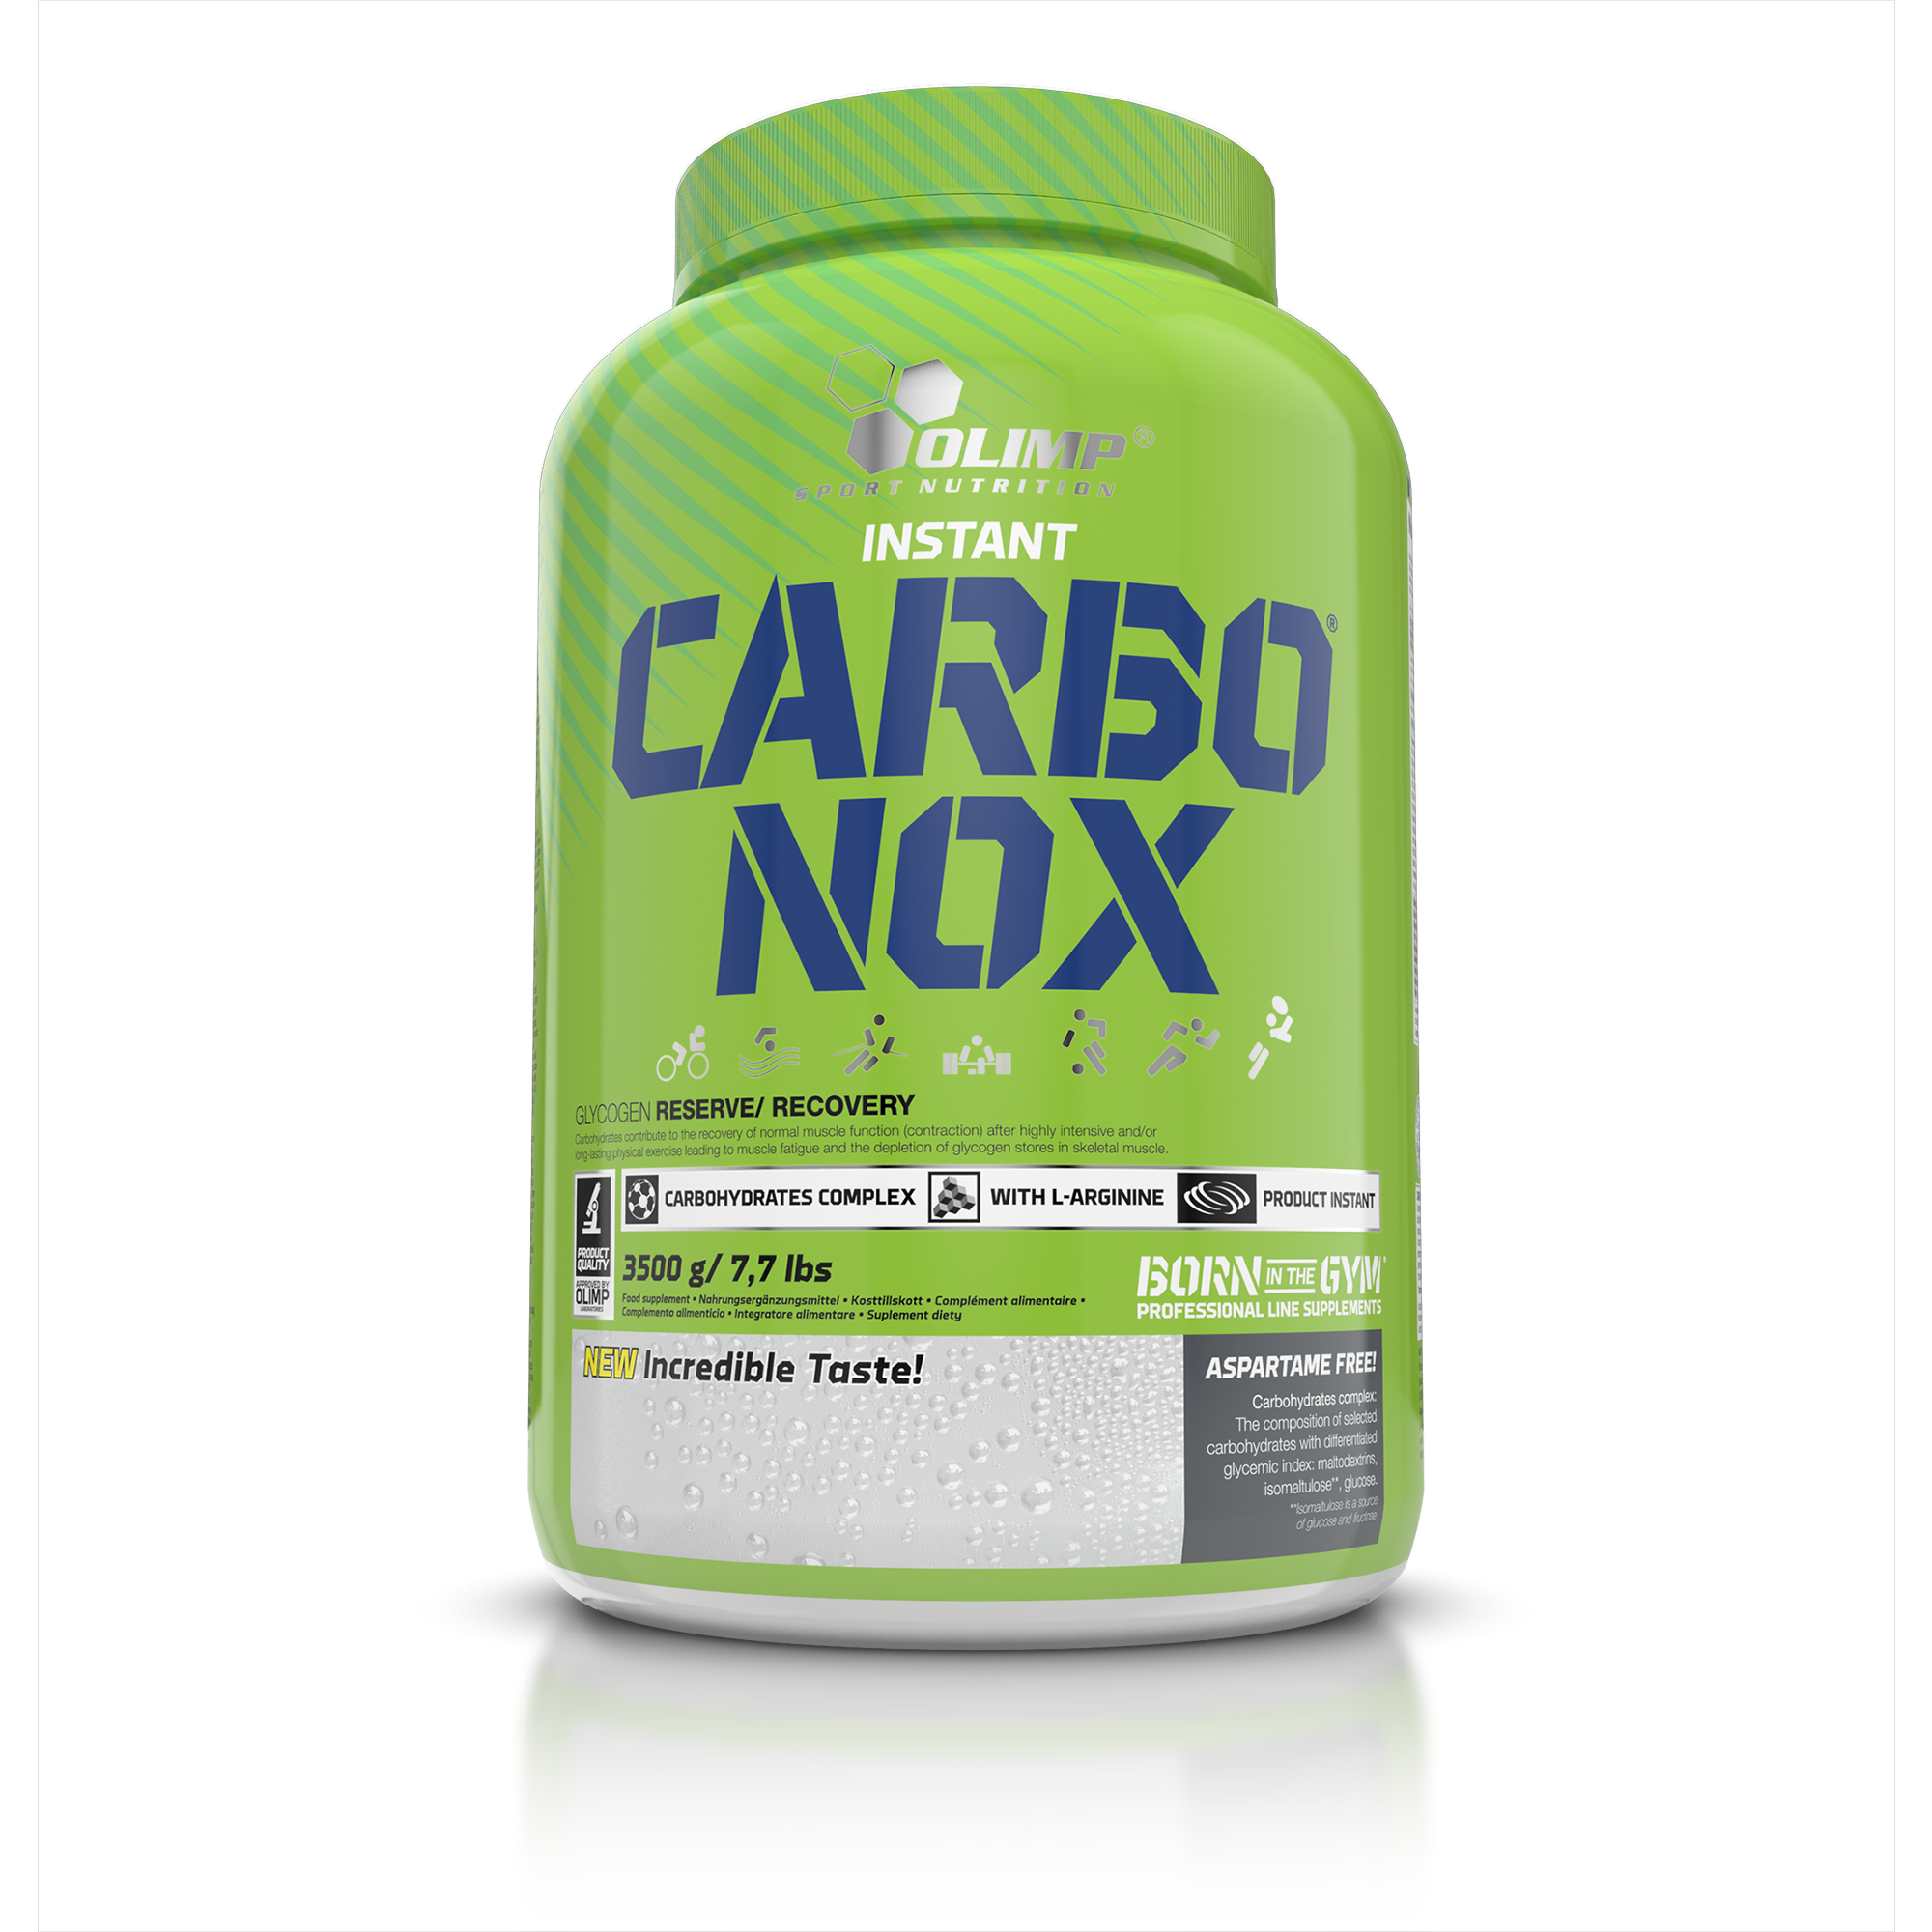 CarboNox, 3500g, Olimp, Grapefruit